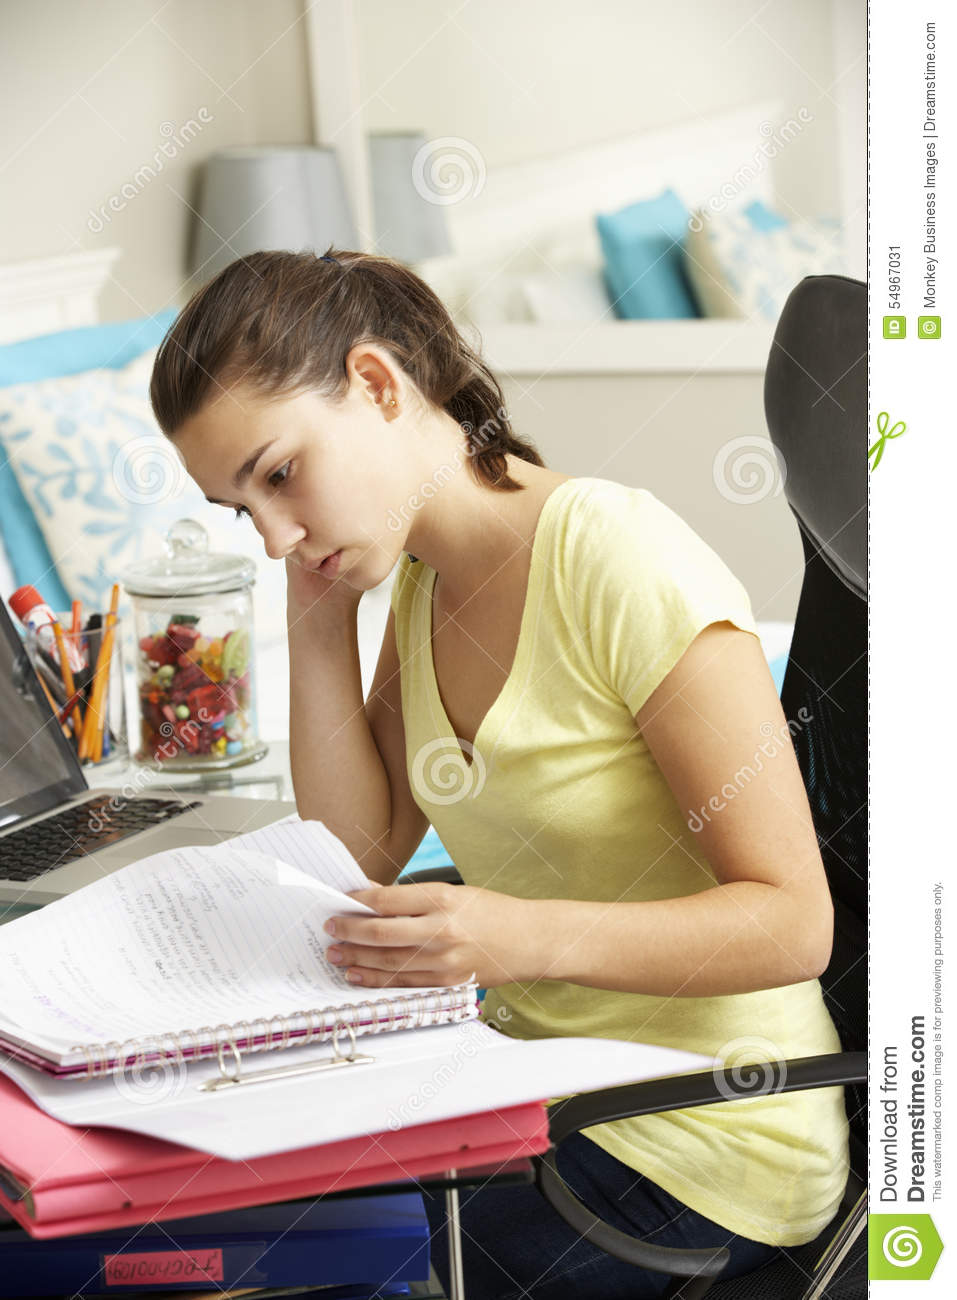 Teenage Girl Studying At Desk In Bedroom Stock Photo Image 54967031